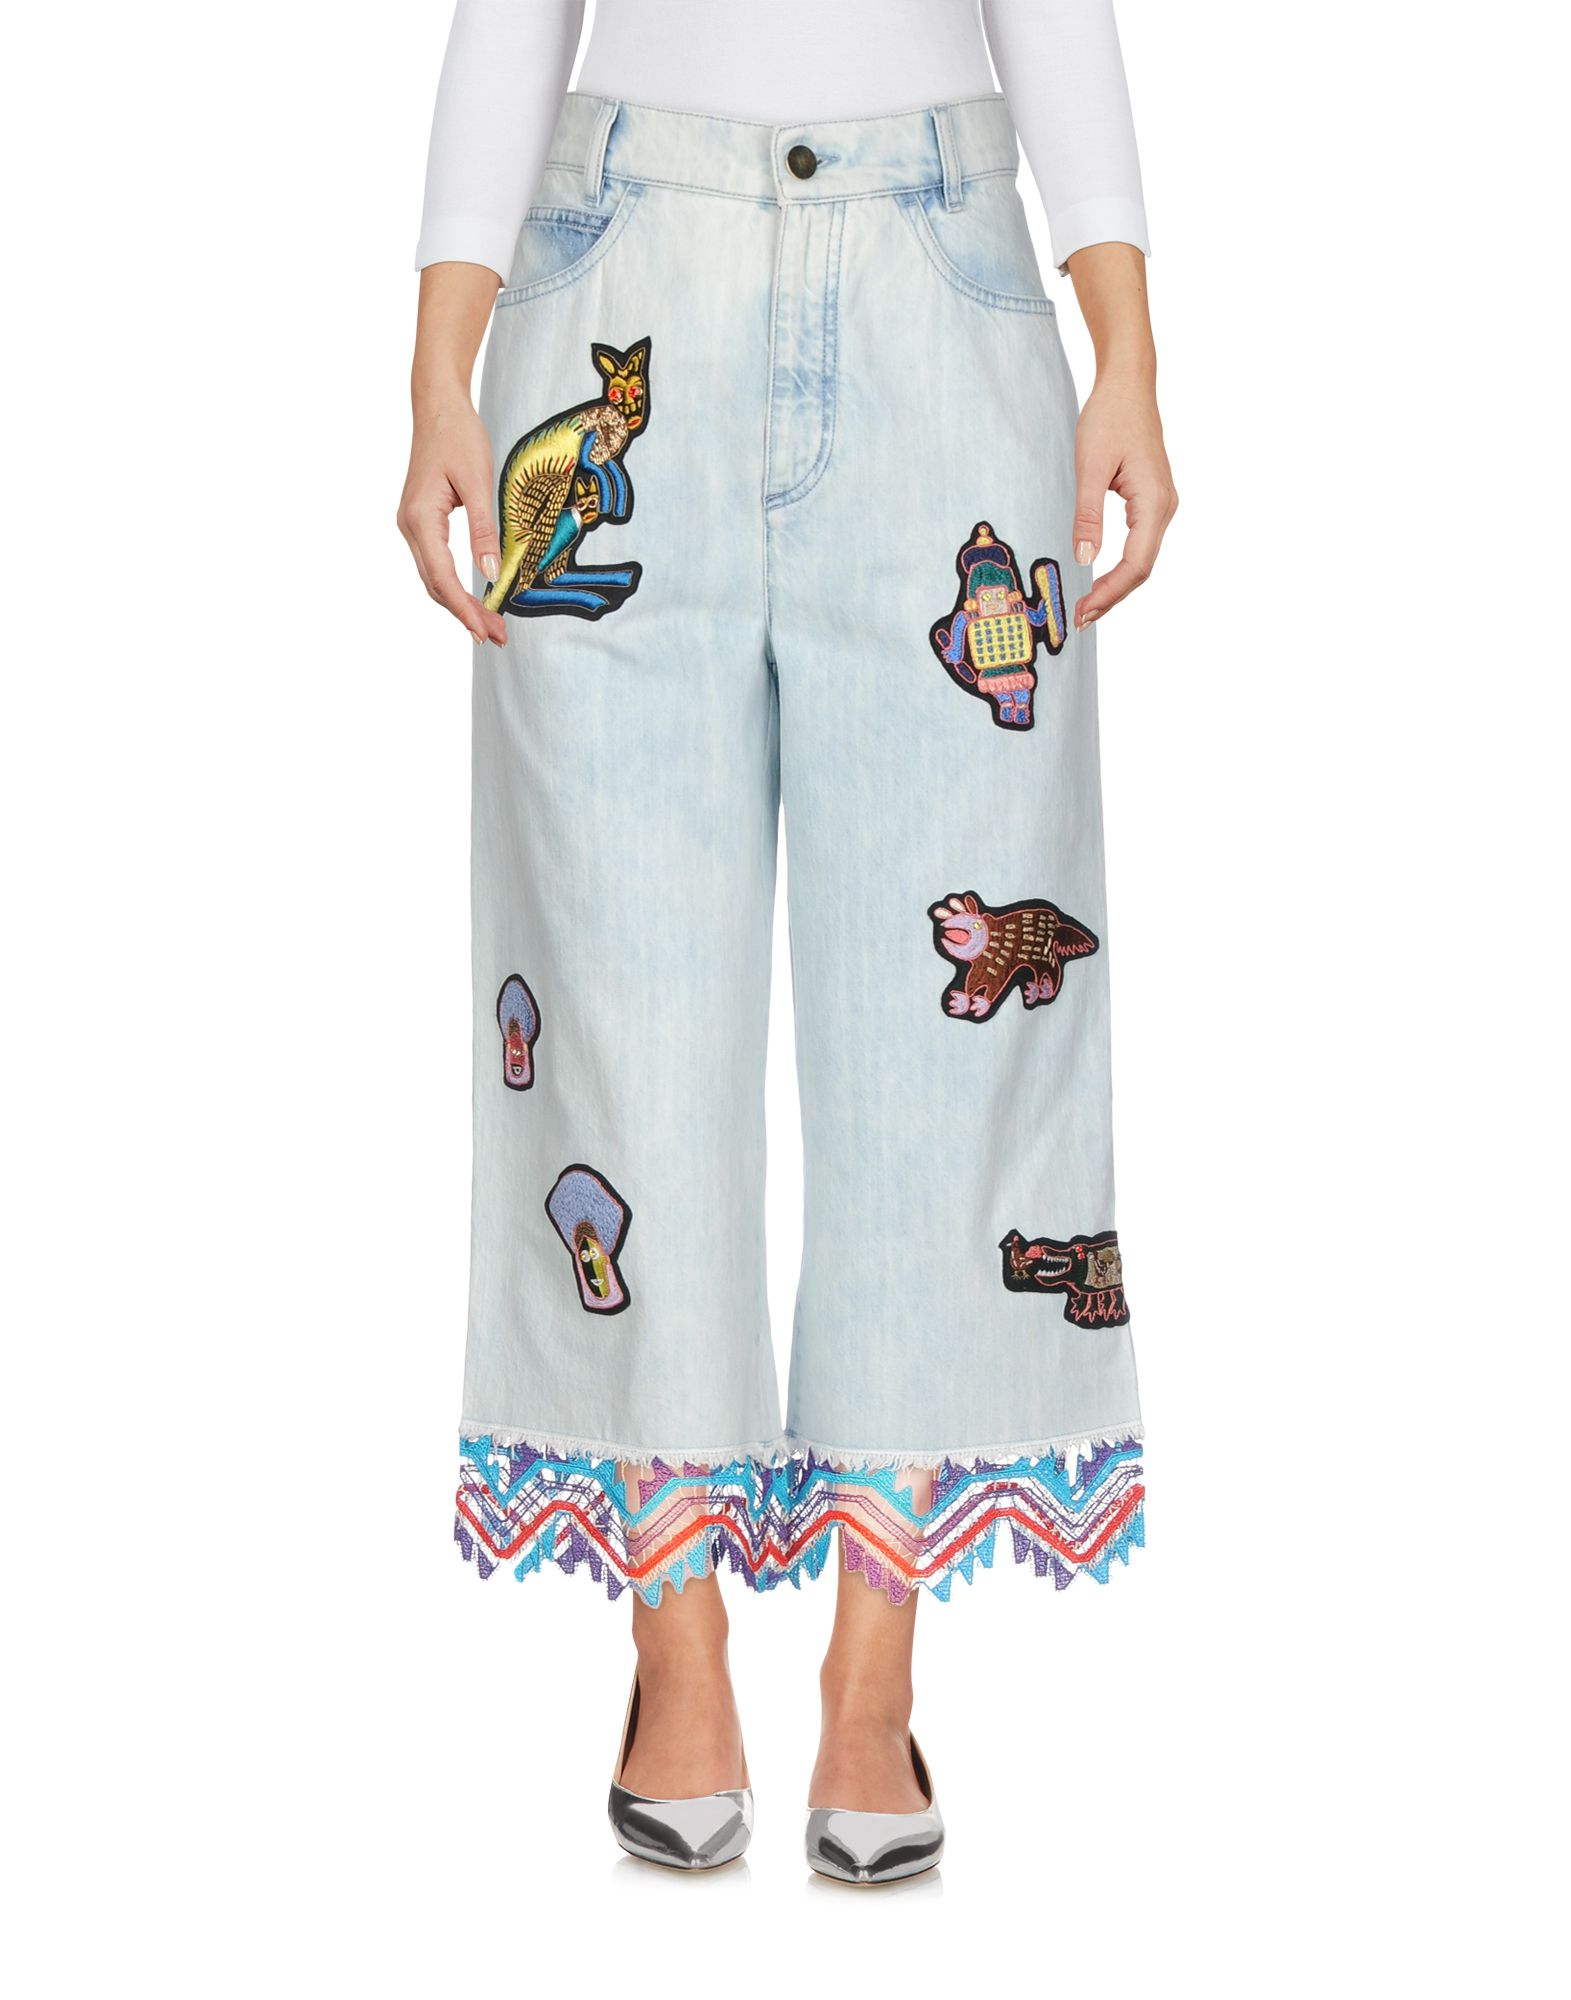 embroidered patch cropped jeans - Blue Peter Pilotto YPrbV9